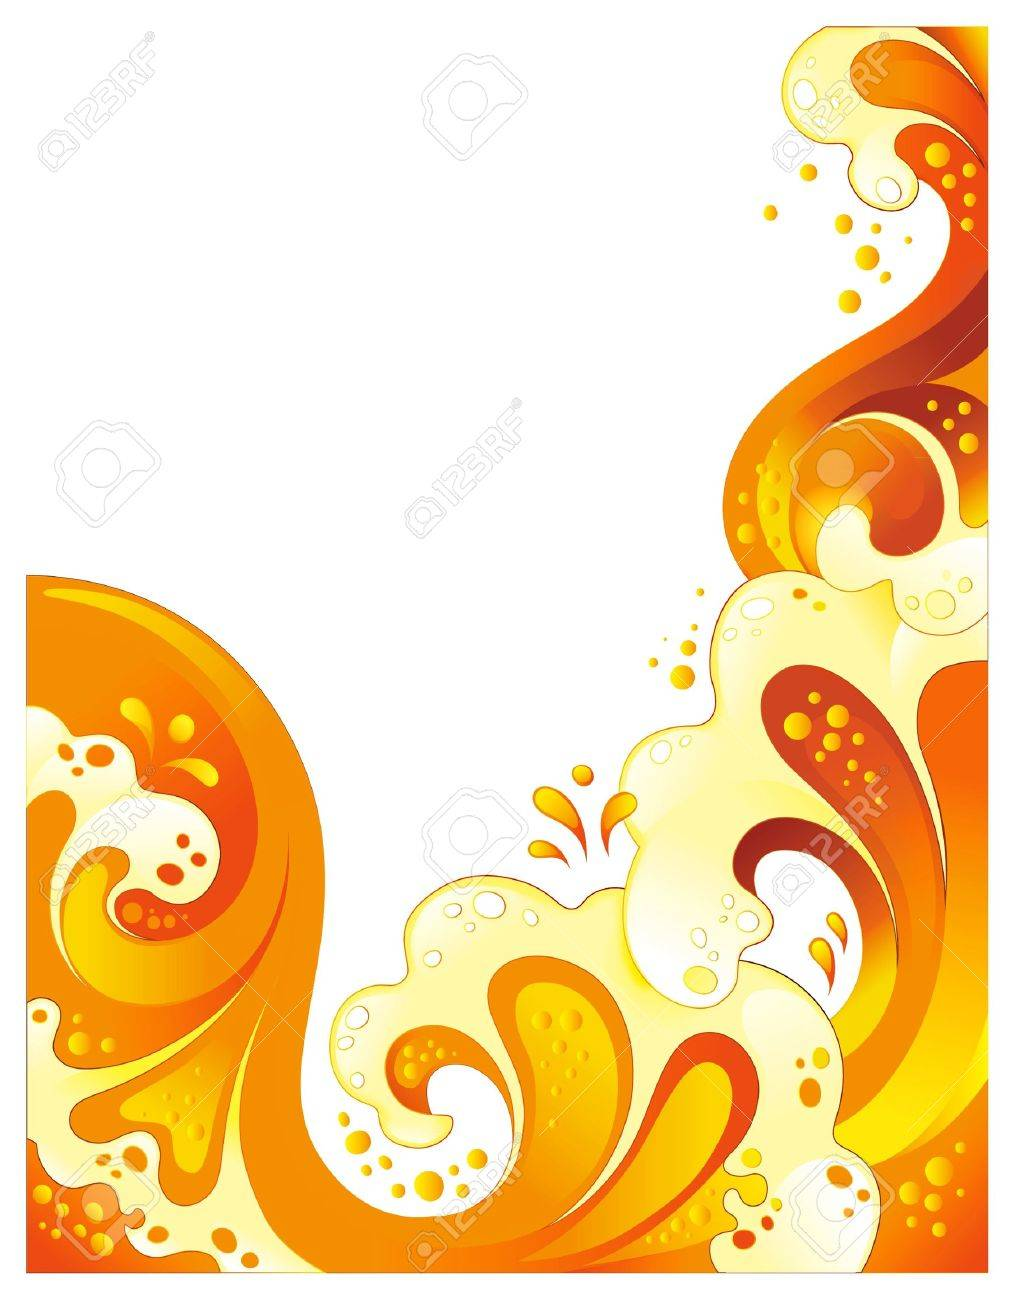 Abstract drink background. No transparency, mesh or blends Stock Vector - 11968311